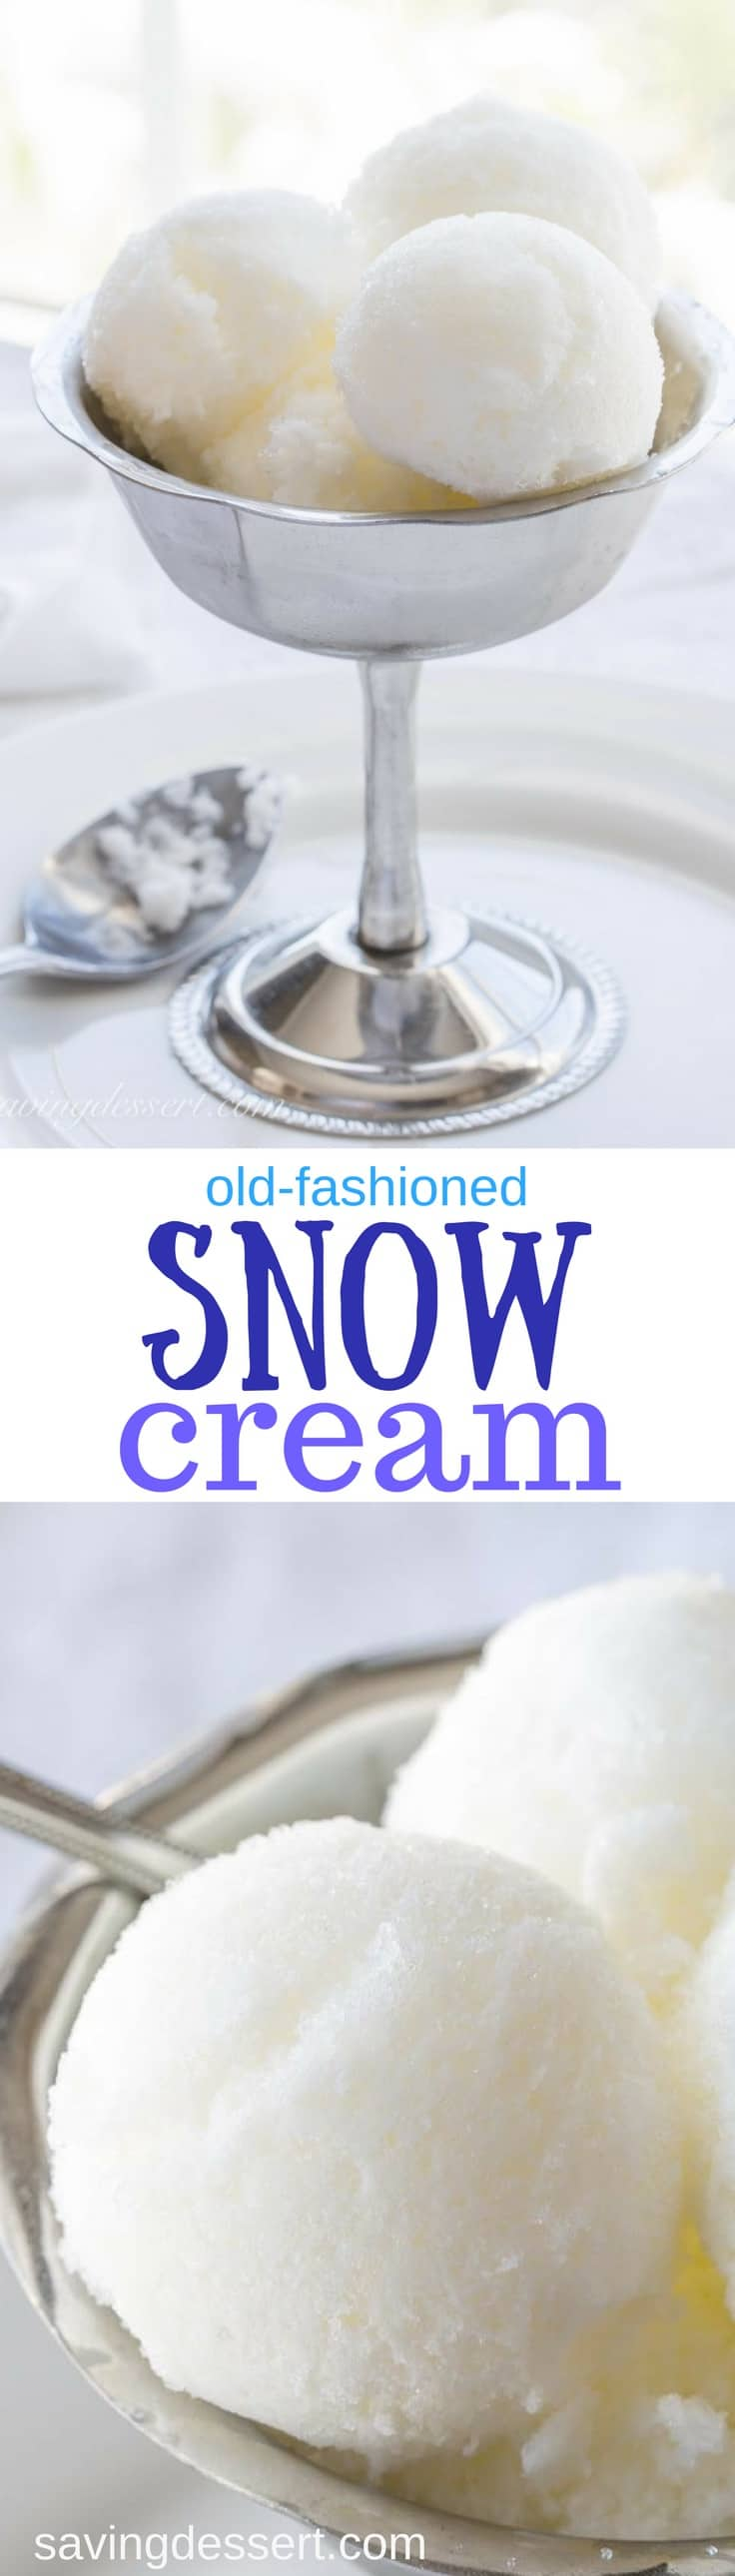 Homemade Old-Fashioned Snow Cream -A treat from days gone by, snow cream is a wonderful, easy frozen classic that falls out of the sky! www.savingdessert.com #savingroomfordessert #snowcream #snow #icecream #frozentreat